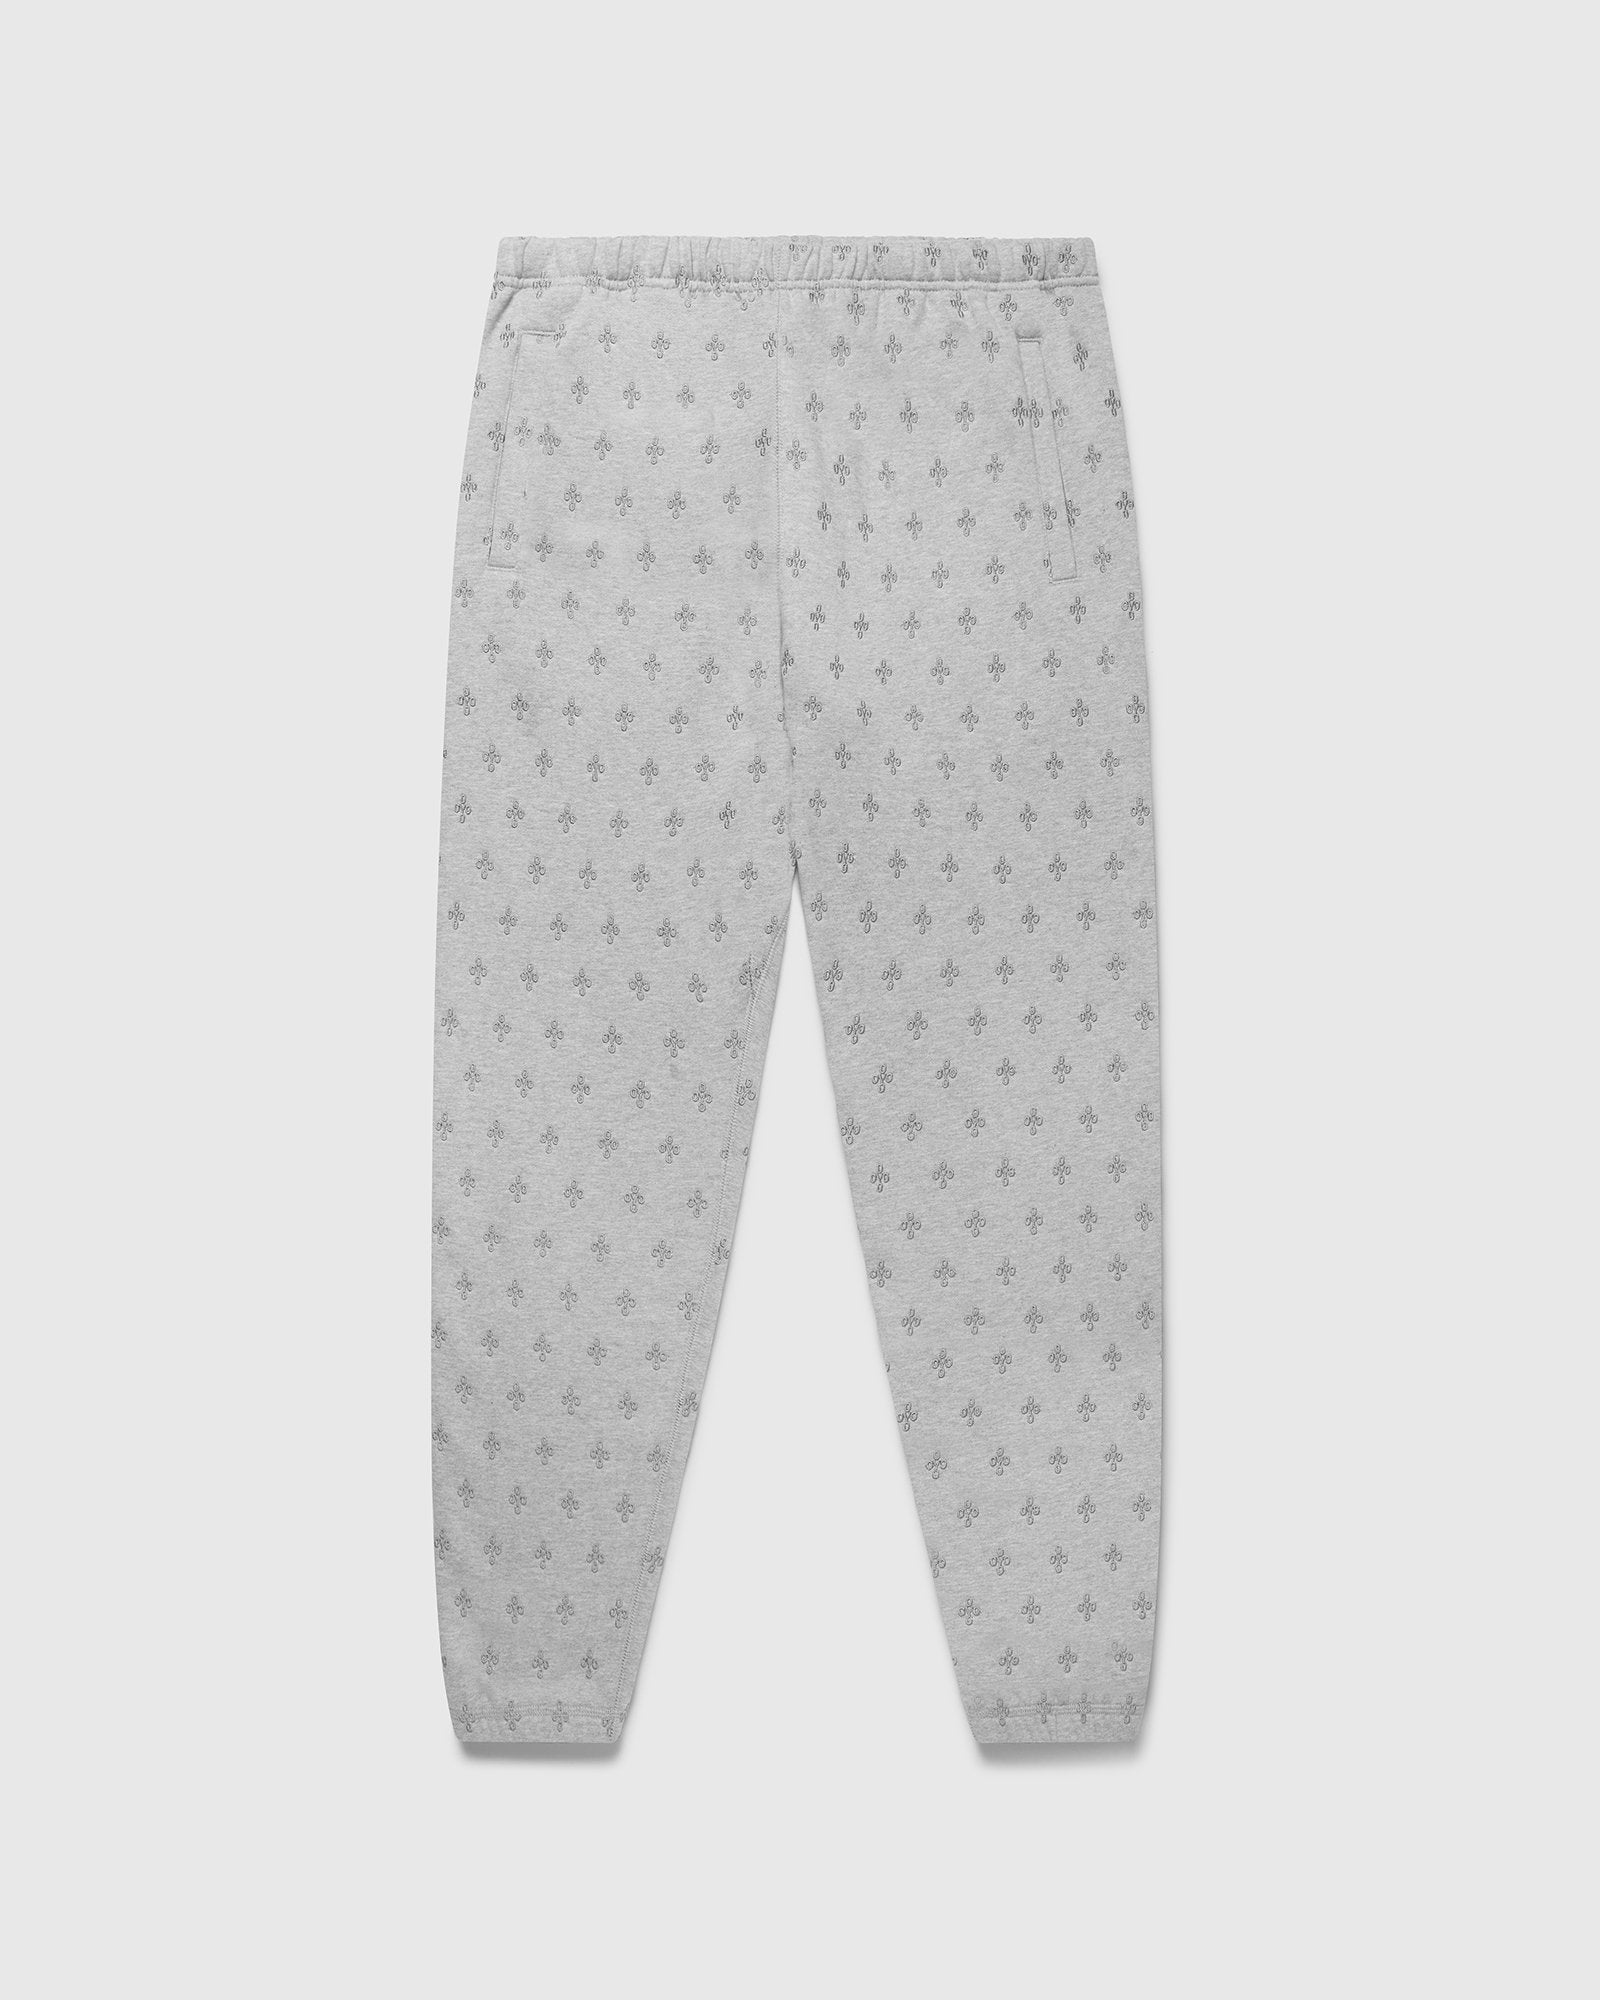 MONOGRAM SWEATPANT - HEATHER GREY IMAGE #1